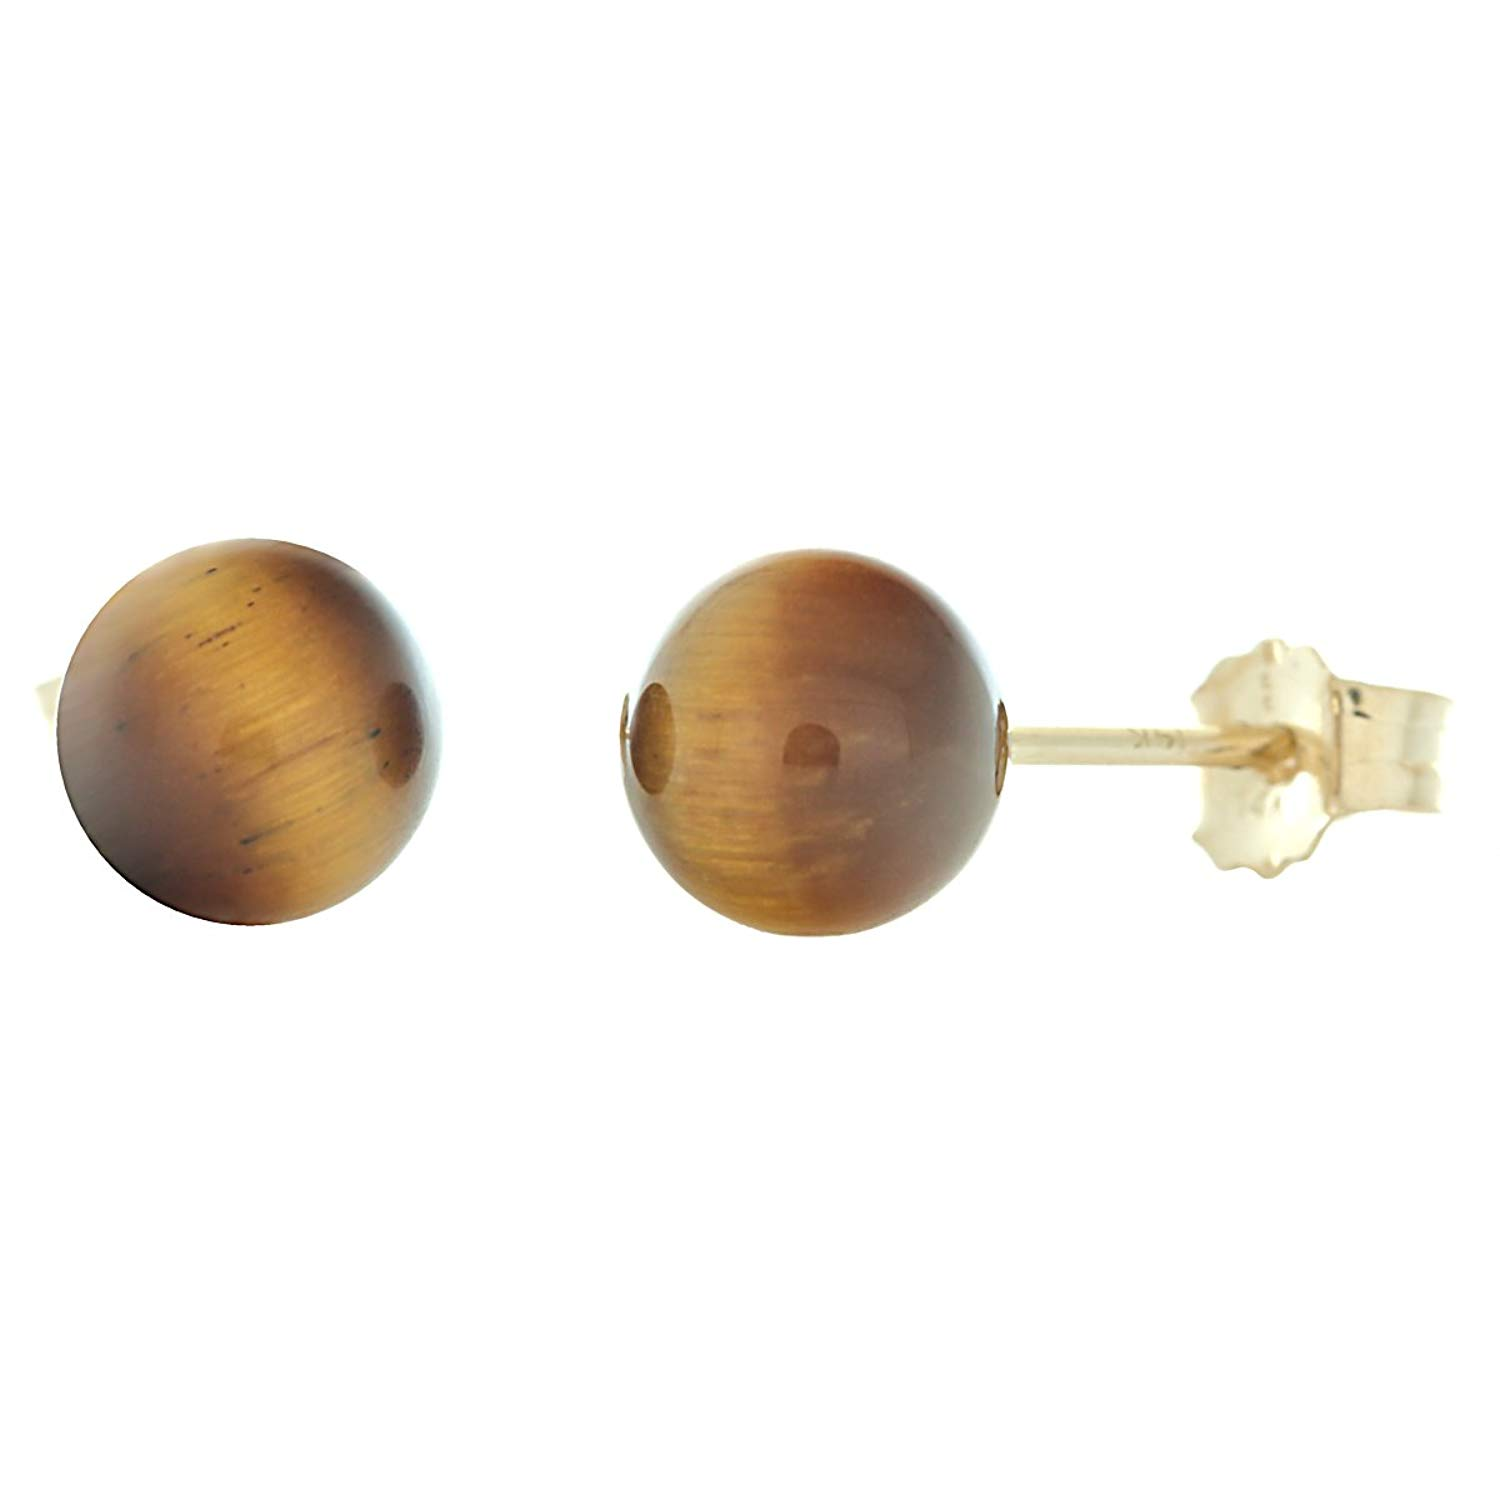 cf8c1ff04 Get Quotations · Trustmark 14K Yellow Gold 6mm Natural Brown Tigers Eye Ball  Stud Post Earrings Solid